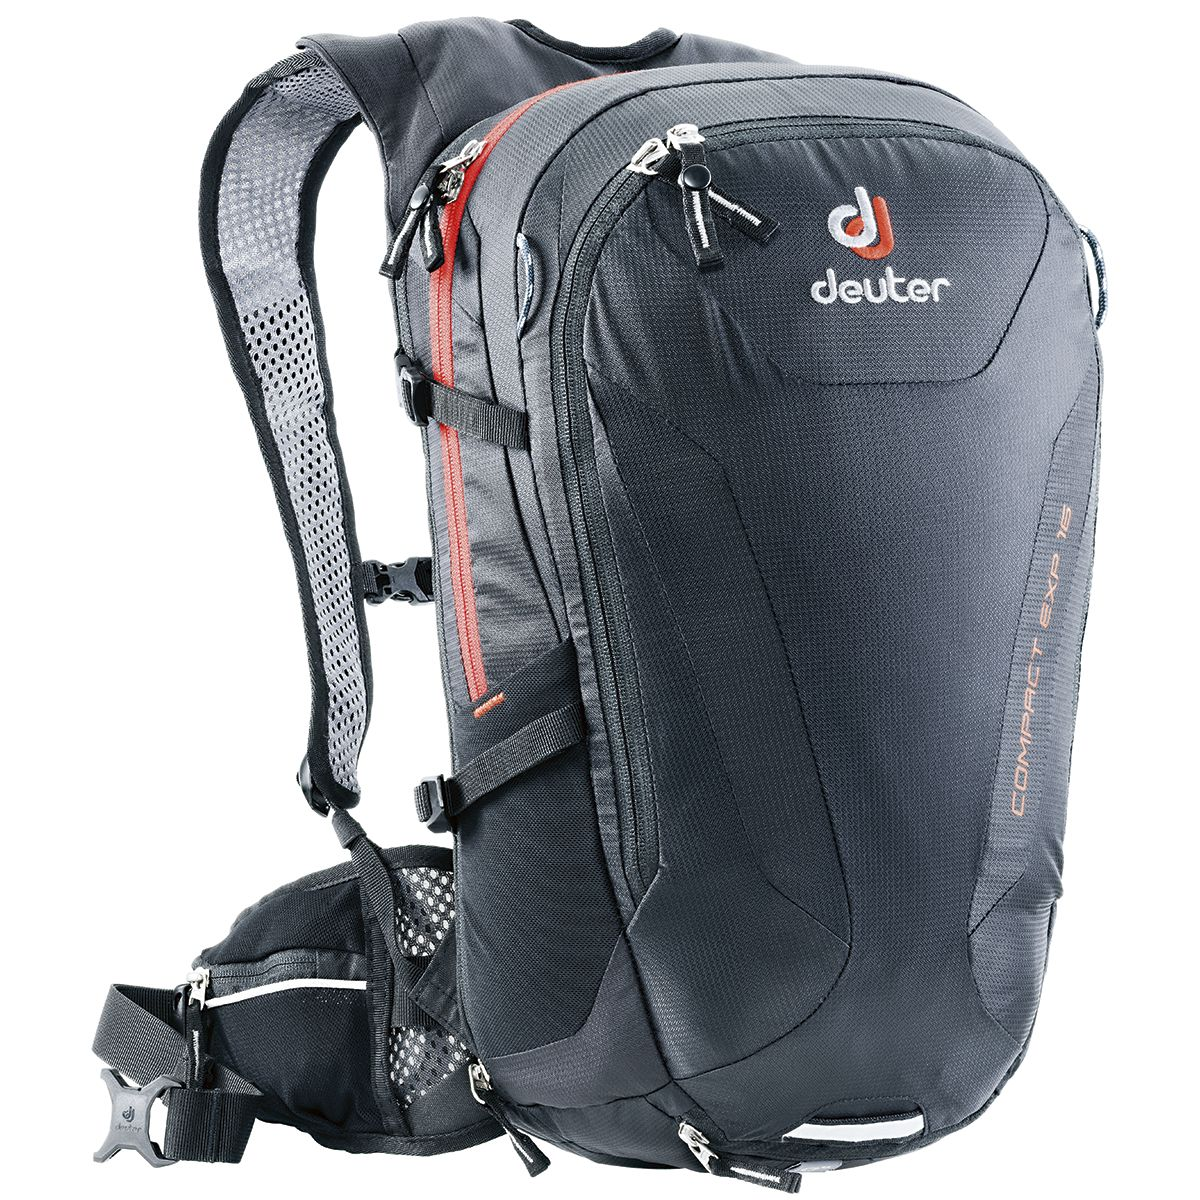 COMPACT EXP 16 backpack